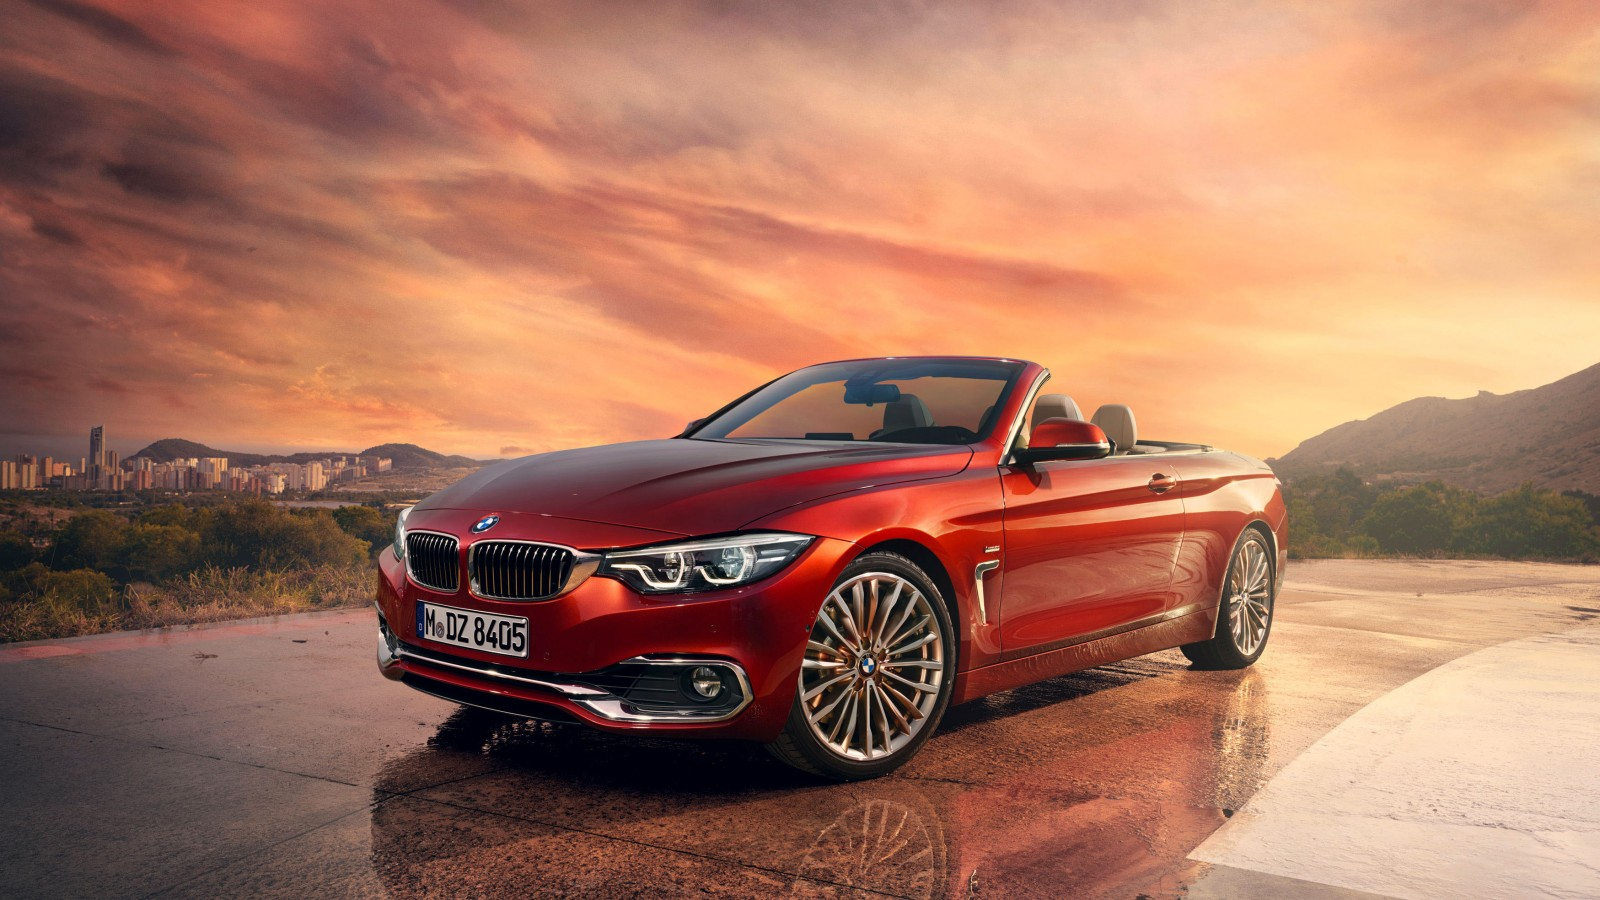 2017 bmw 4 series gran coupe wallpaper hd car wallpapers id 8093. Black Bedroom Furniture Sets. Home Design Ideas